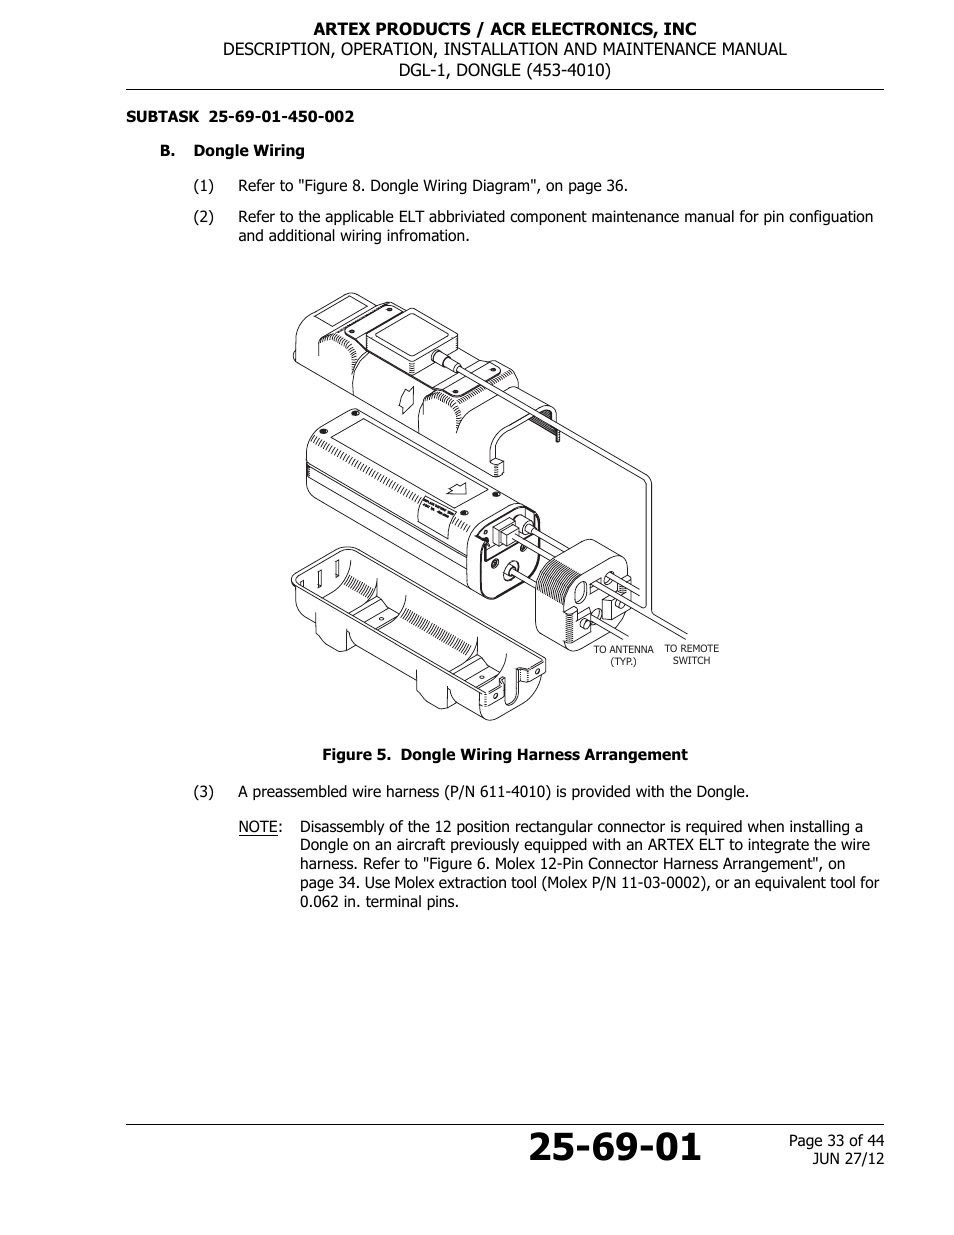 hight resolution of b dongle wiring figure 5 dongle wiring harness arrangement acr artex dgl 1 user manual page 33 44